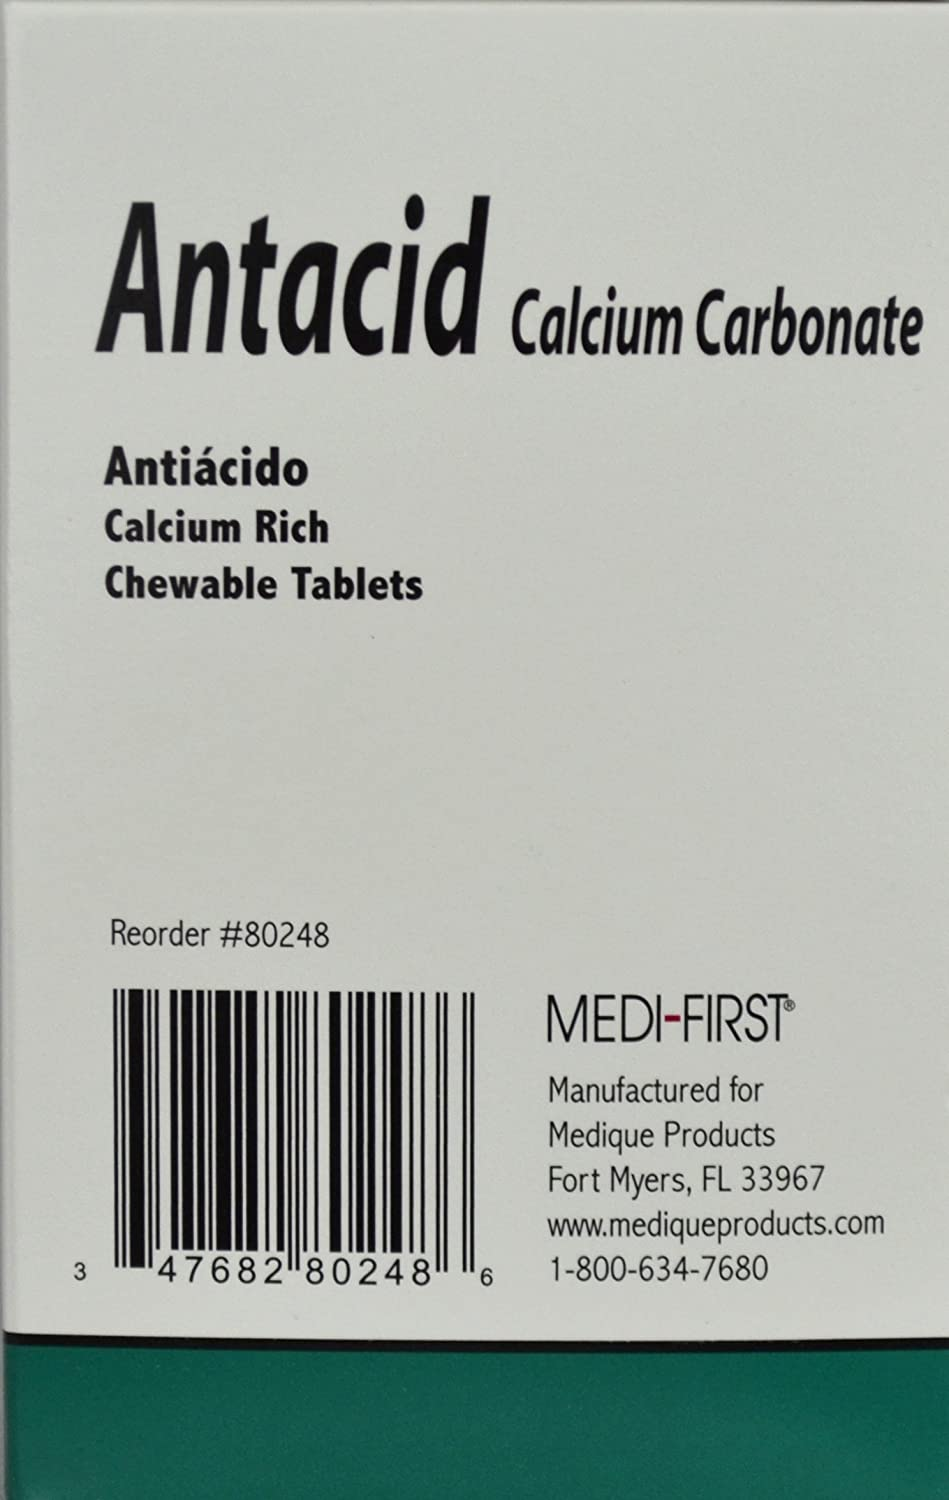 Amazon.com: ANTACID Calcium Carbonate 420 mg. Tablets (250 Tab. / Box) 6 Boxes by Medique - MS71240: Health & Personal Care